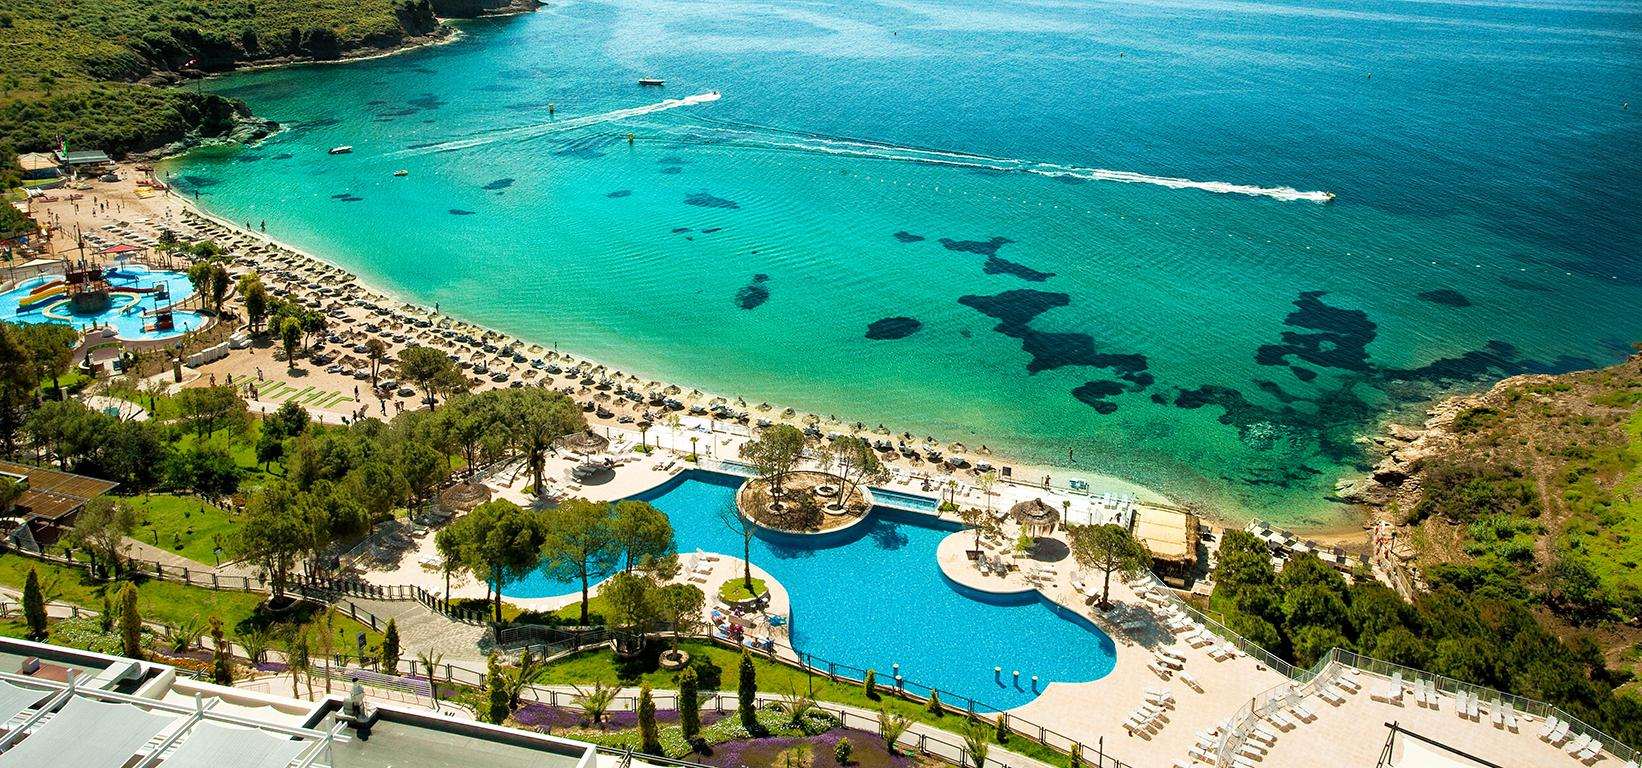 Op Turkije Vakantie bestemming is alles over Egeïsche kust te vinden: waaronder Ozdere en specifiek Xperience Aria Claros Beach & Spa Resort (Xperience-Aria-Claros-Beach--Spa-Resort193873)